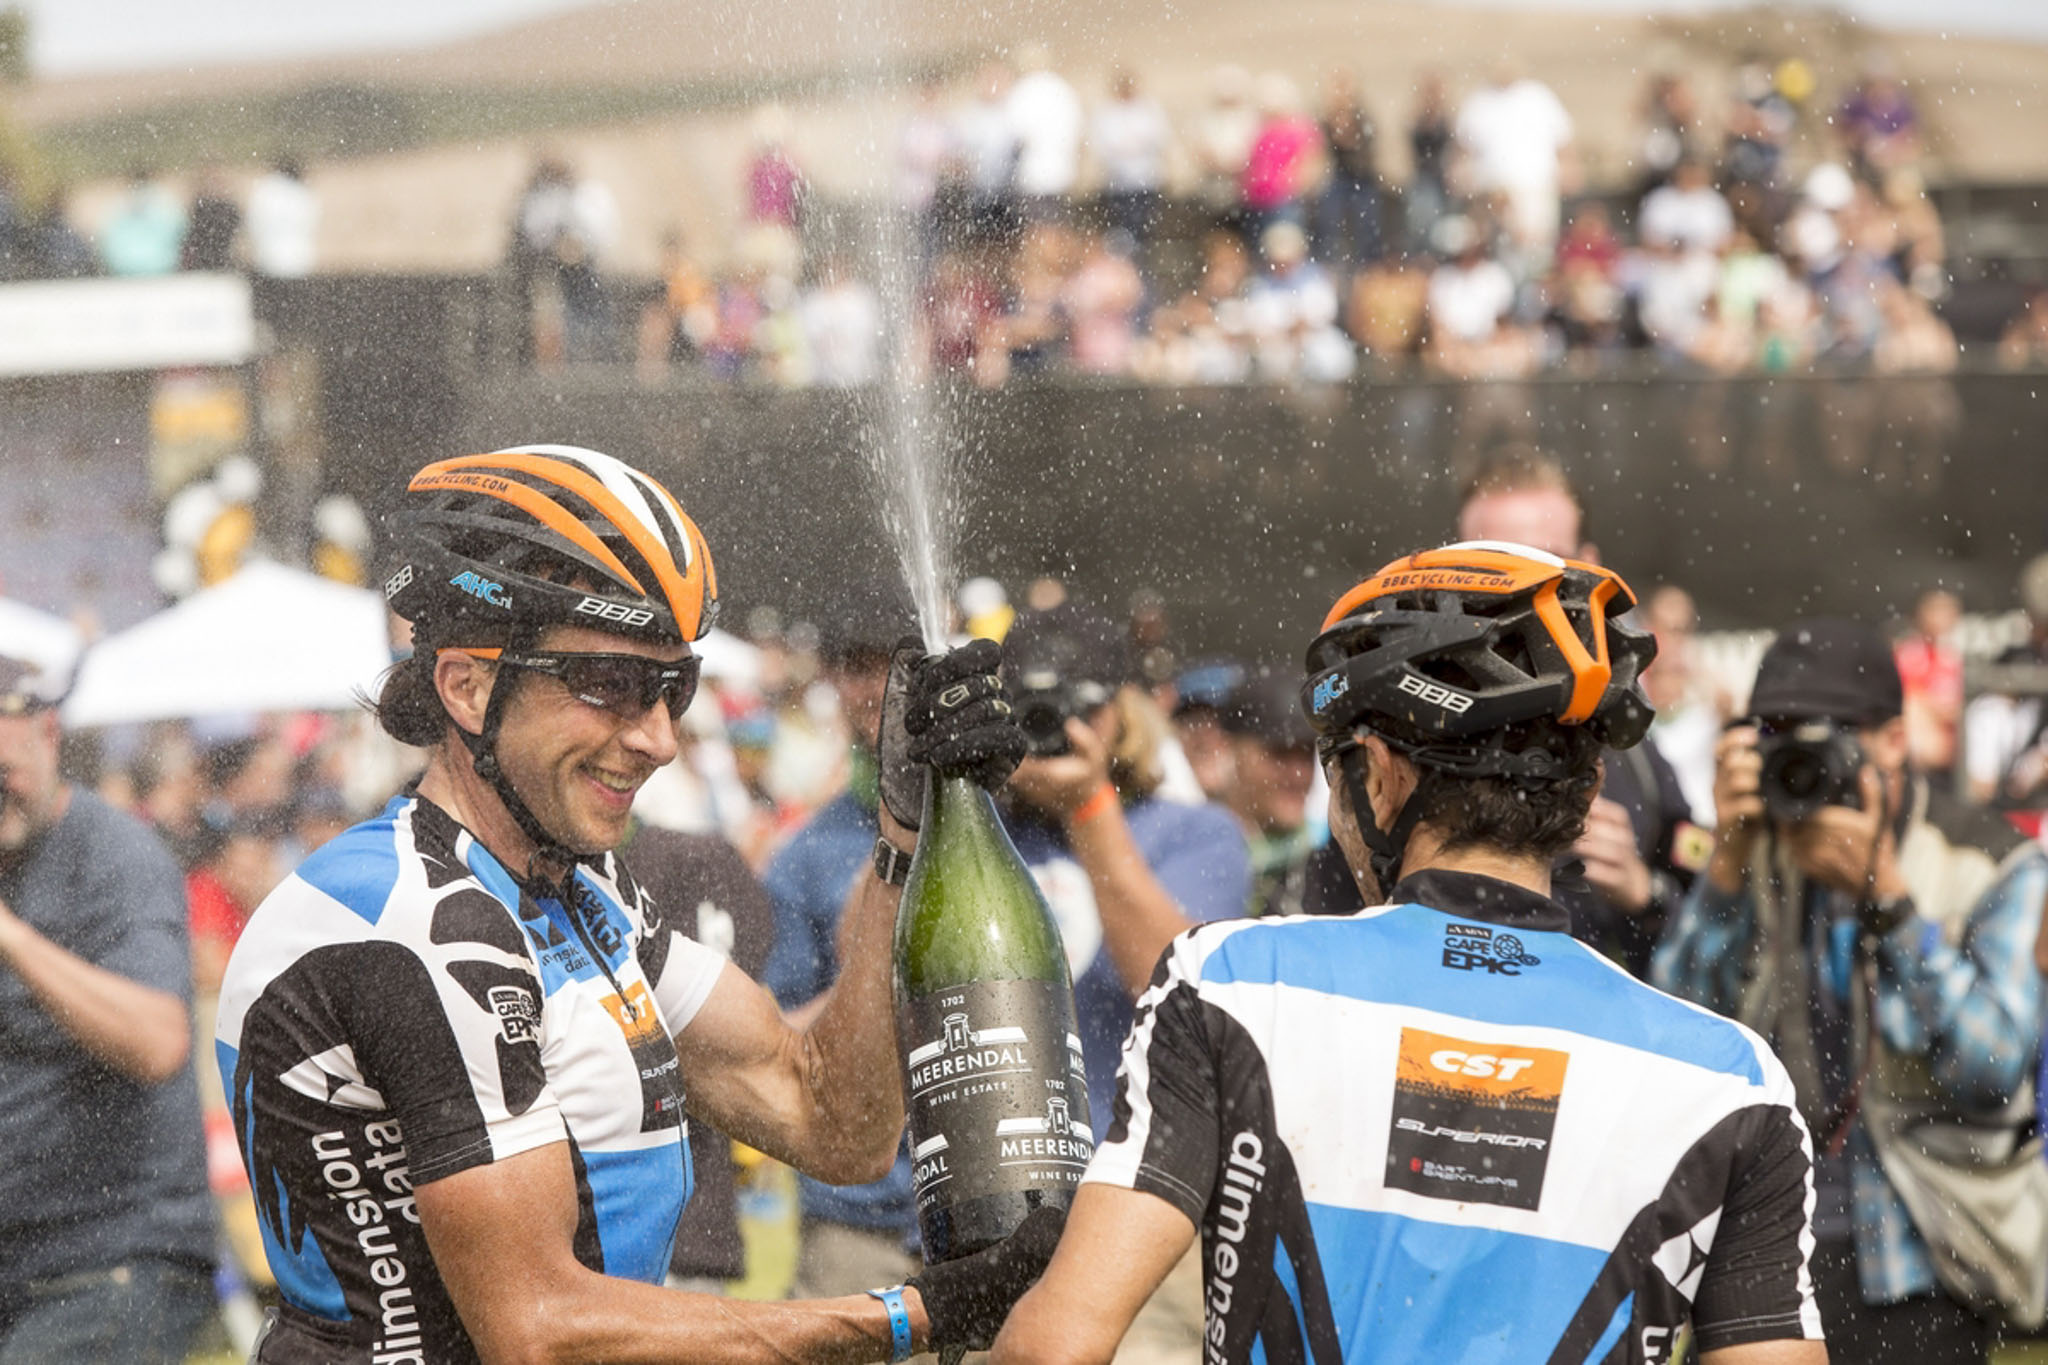 Bart Brentjens and Abraao Azevedo celebrate after the final stage (stage 7) of the 2016 Absa Cape Epic Mountain Bike stage race from Boschendal in Stellenbosch to Meerendal Wine Estate in Durbanville, South Africa on the 20th March 2016 Photo by Sam Clark/Cape Epic/SPORTZPICS PLEASE ENSURE THE APPROPRIATE CREDIT IS GIVEN TO THE PHOTOGRAPHER AND SPORTZPICS ALONG WITH THE ABSA CAPE EPIC ace2016